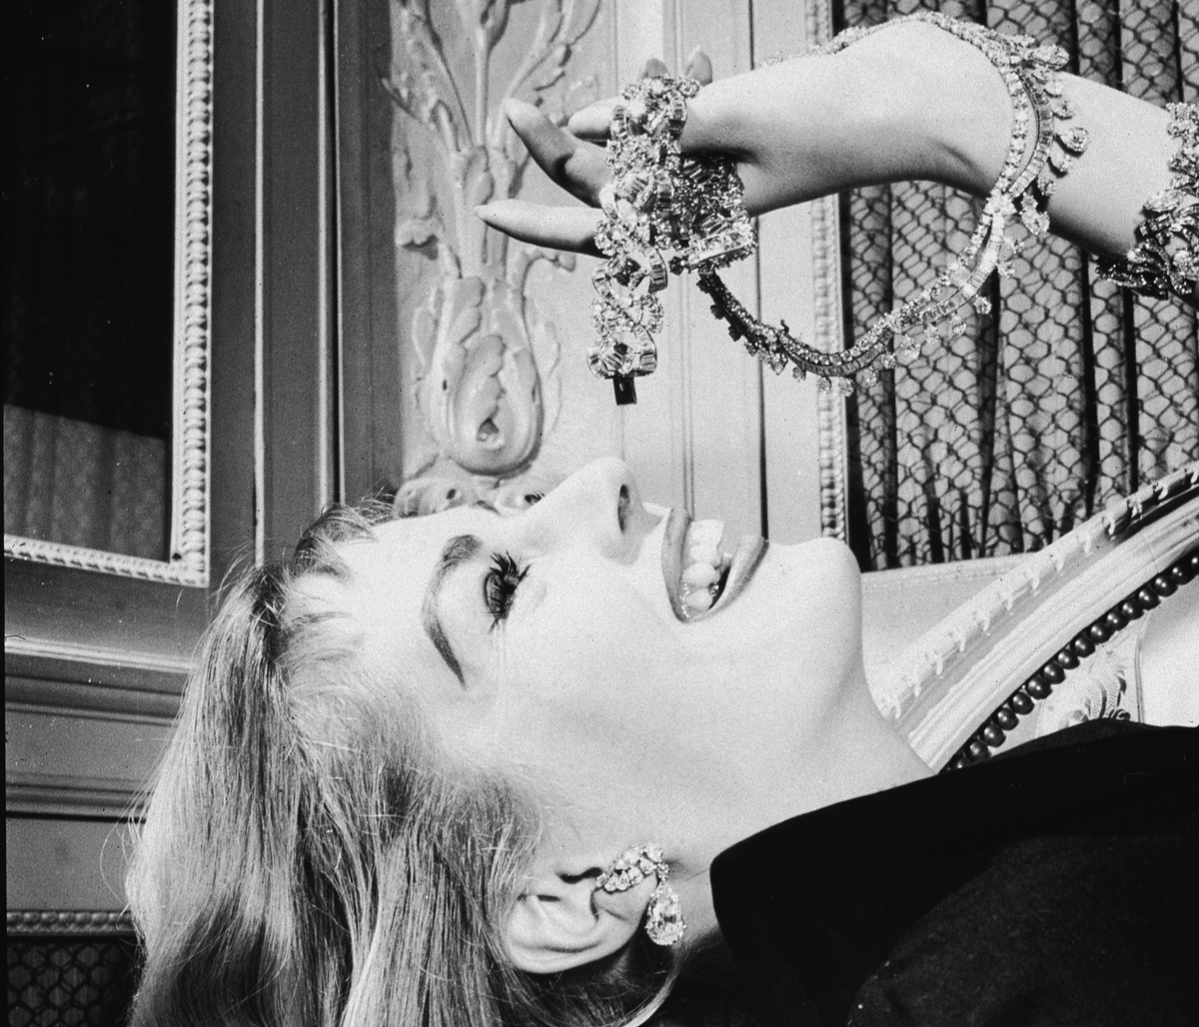 Swedish-born actress Anita Ekberg mimics the pose of eating grapes with pieces of diamond Cartier jewelry